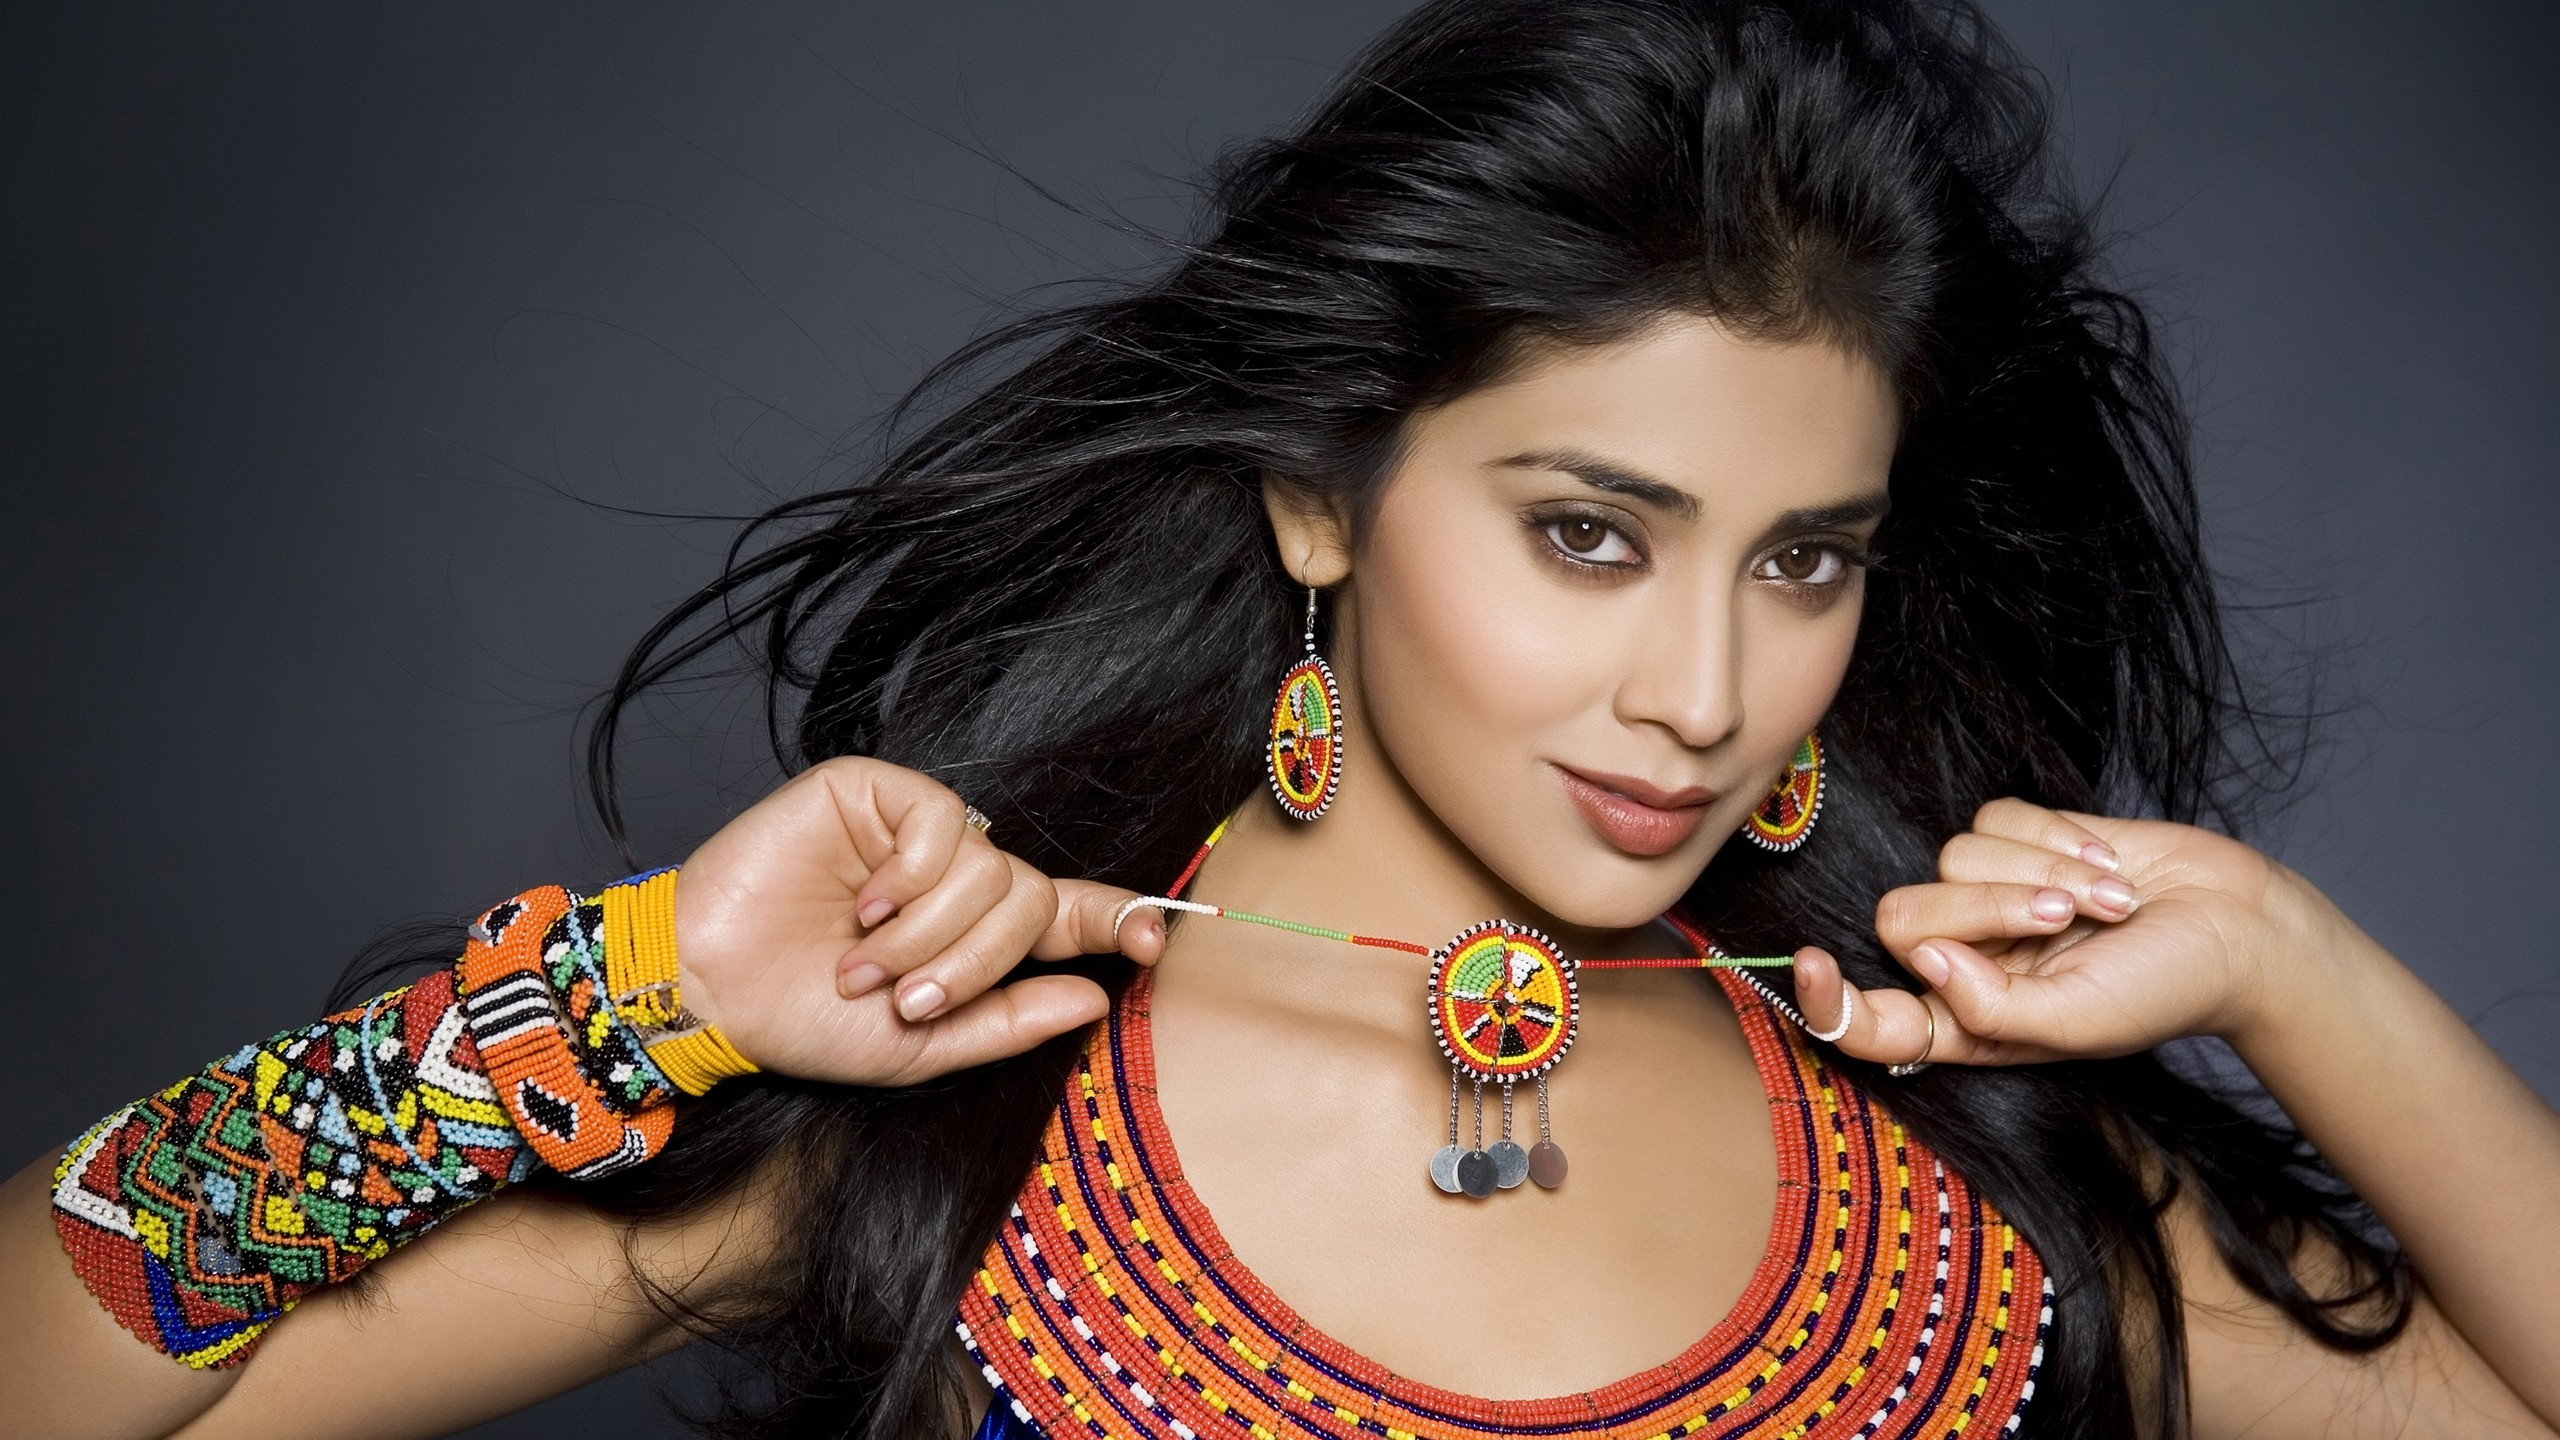 Shriya Saran HD wallpaper for download